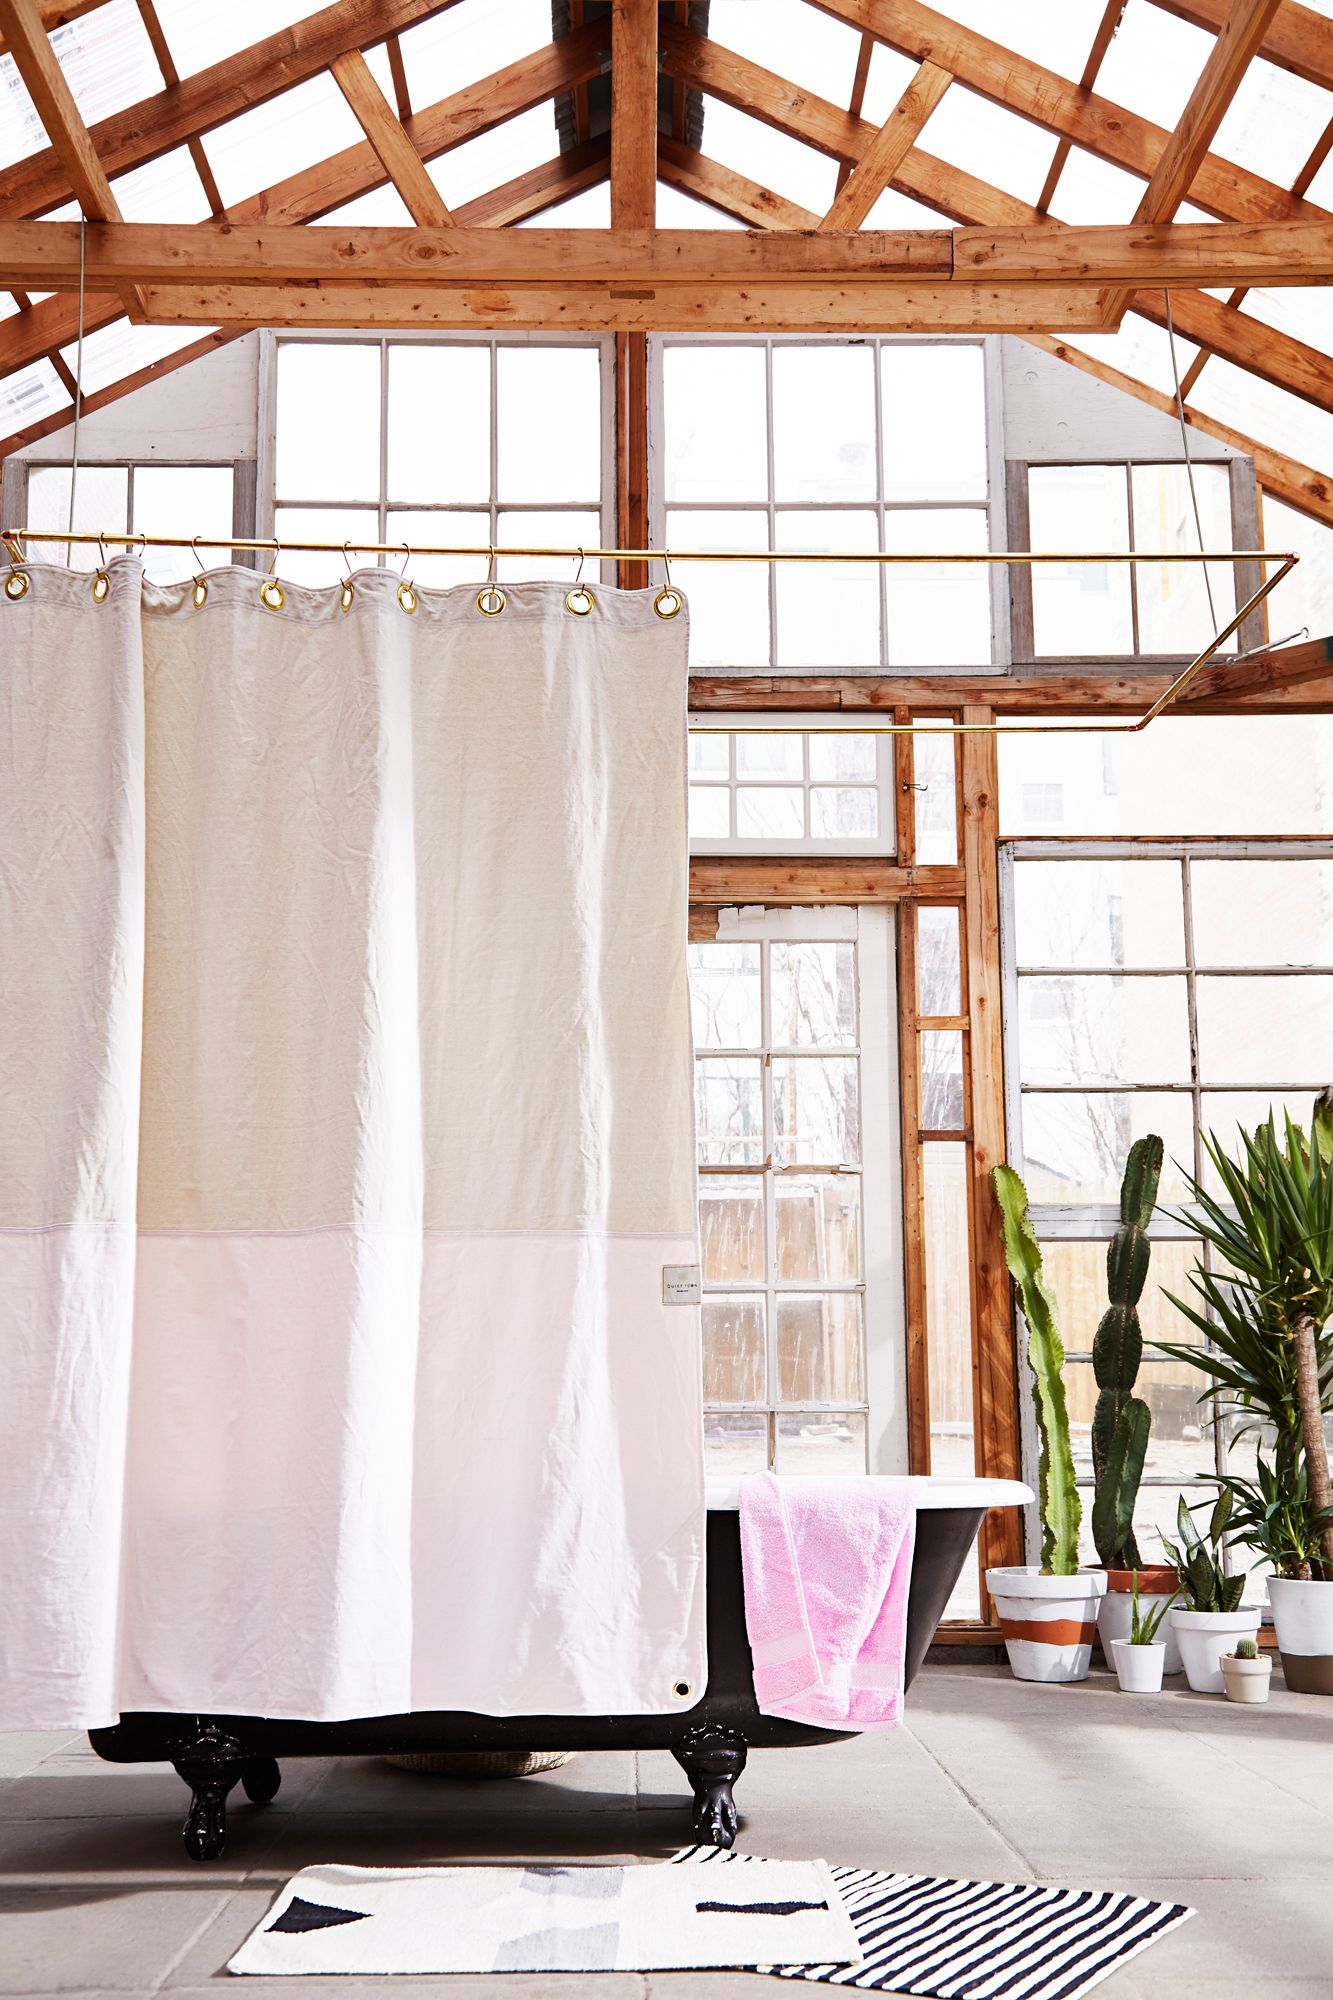 Statement Shower Curtains From Quiet Town Plus Glamorous Hooks Remodelista Sourcebook For The Considered Home Elegant Shower Curtains Home Curtains